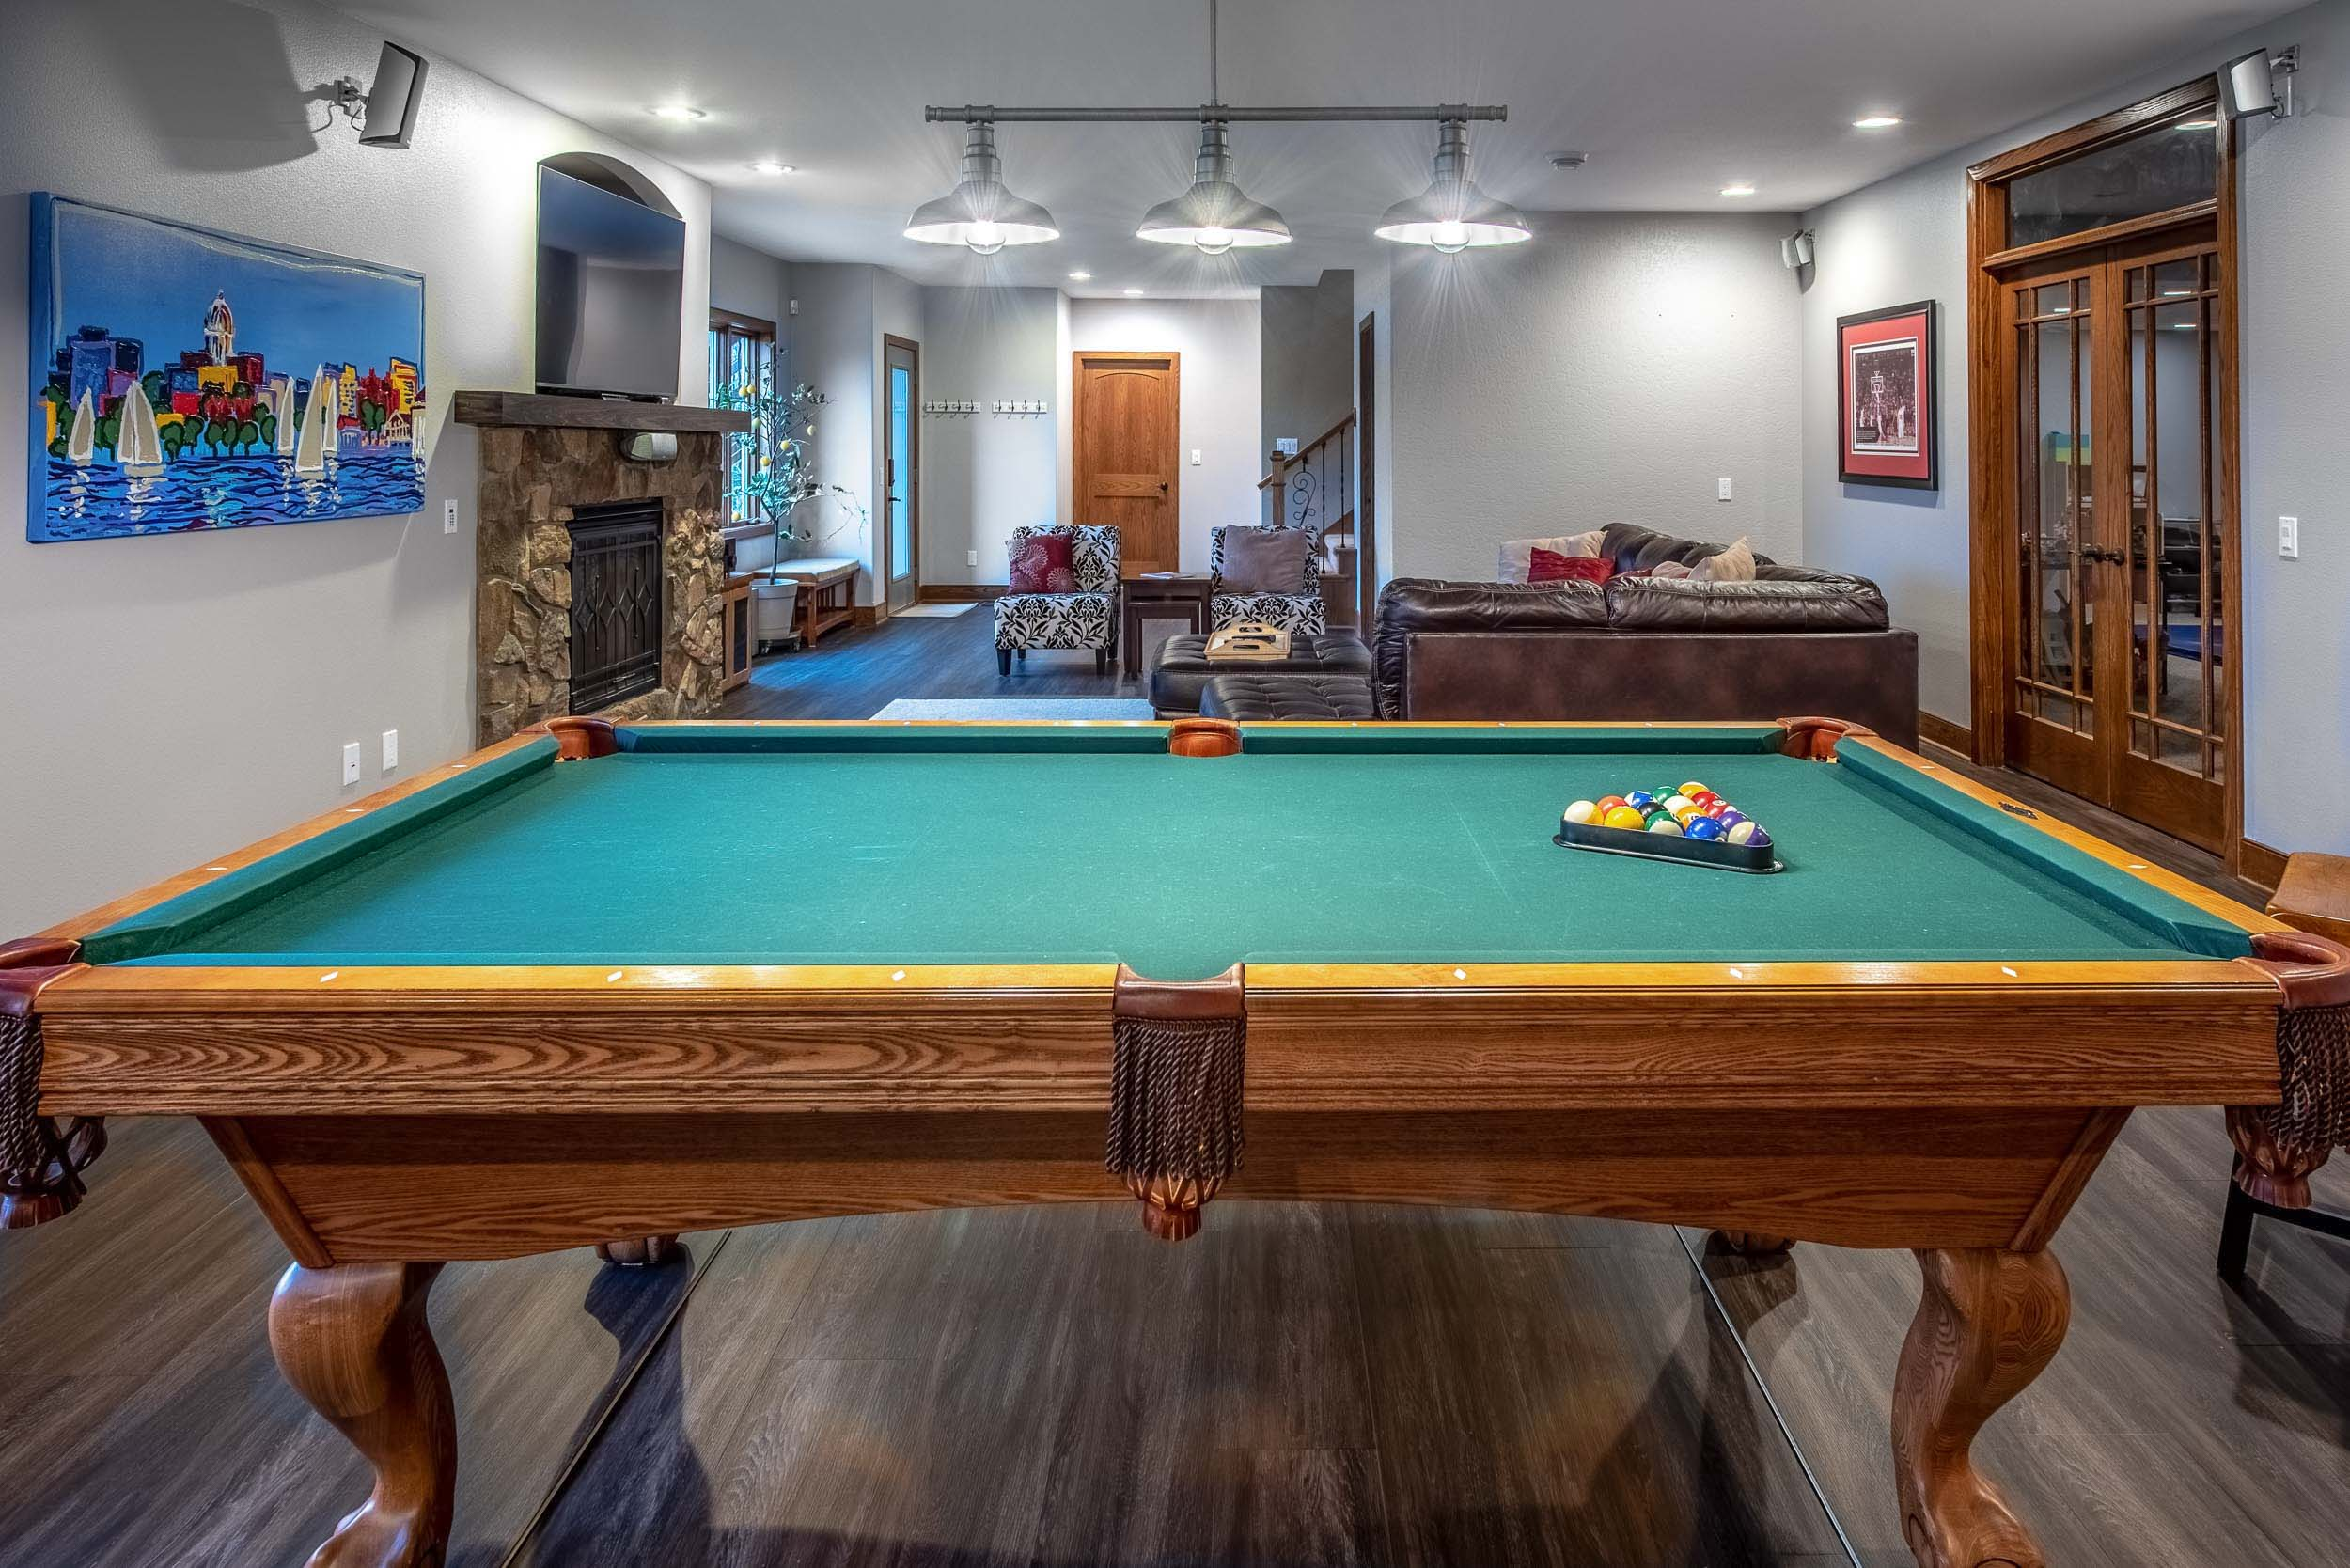 This Large Finished Basement Has Room For A Pool Table